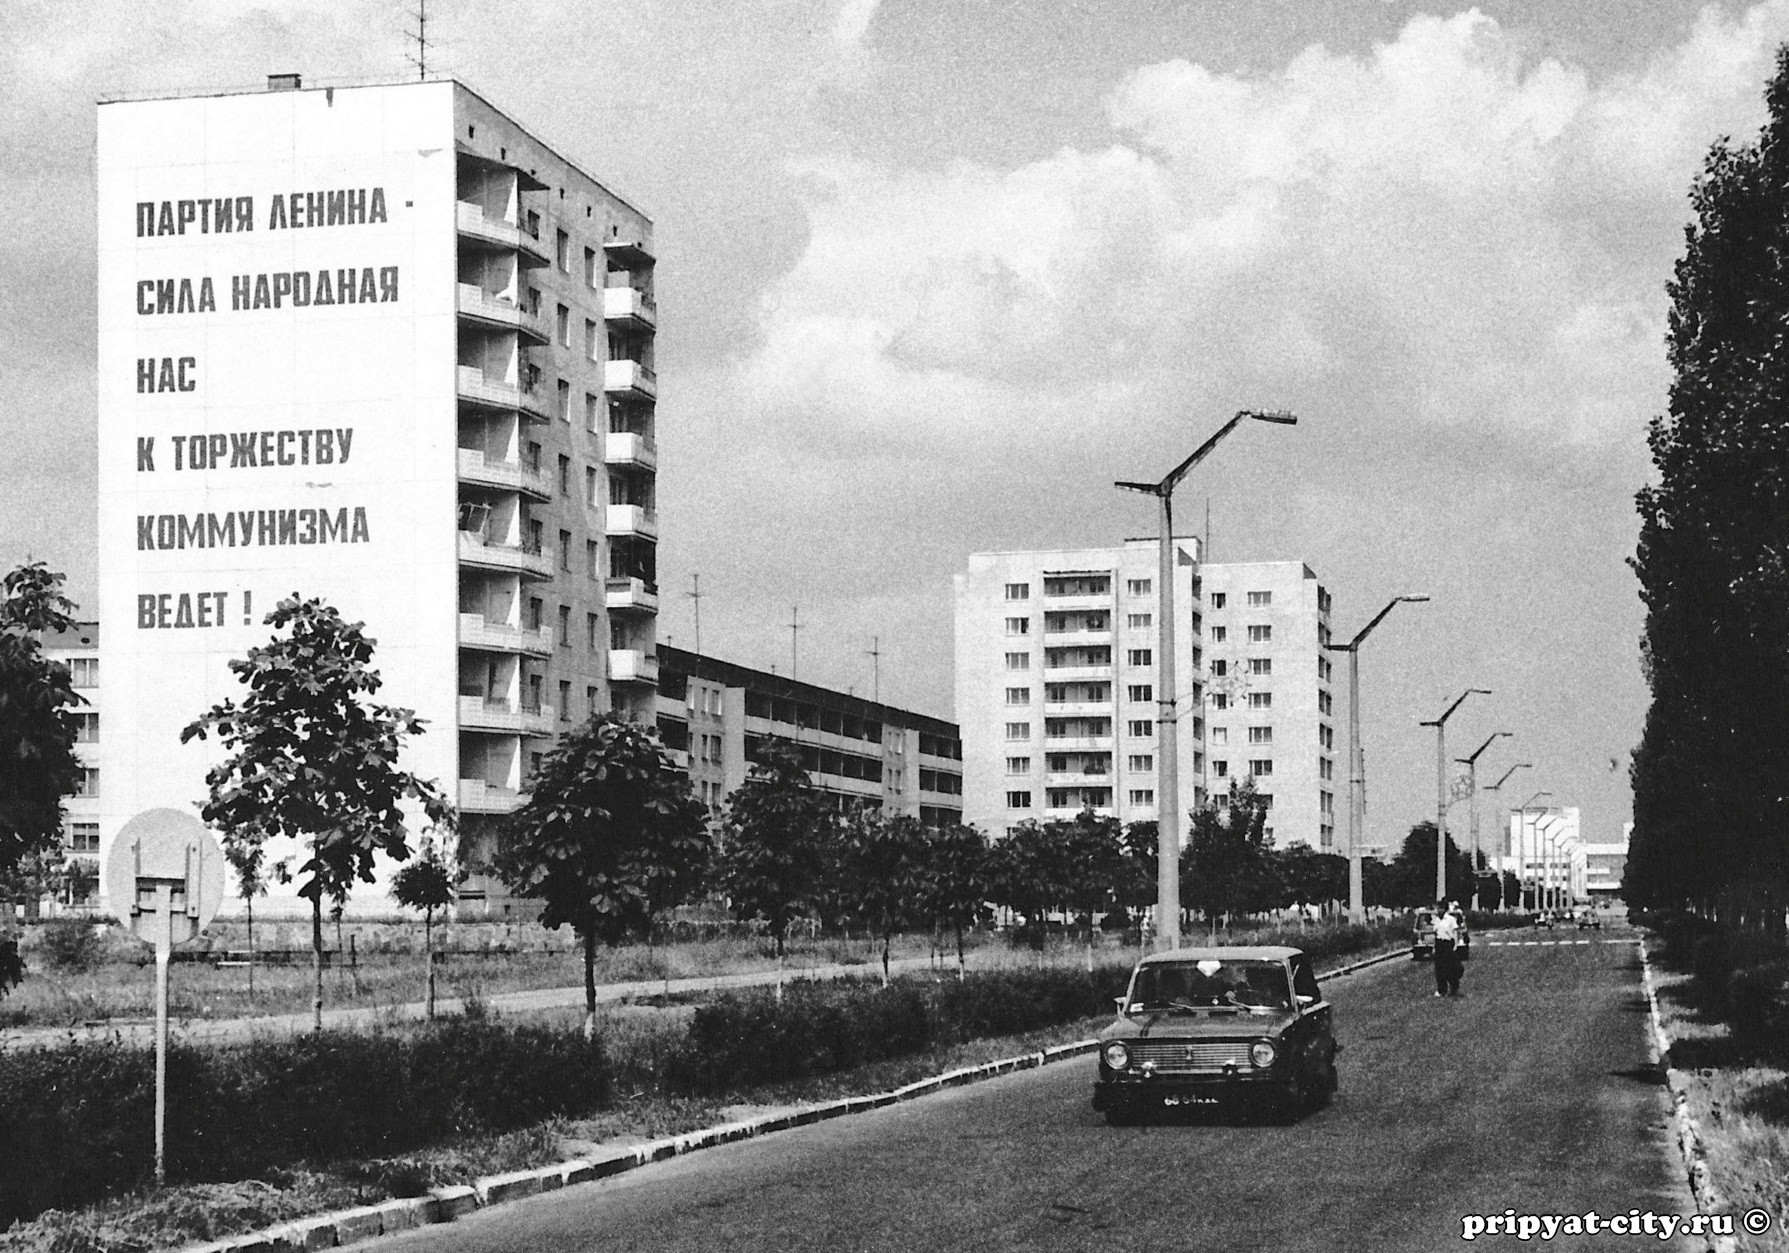 Old photo of Pripyat